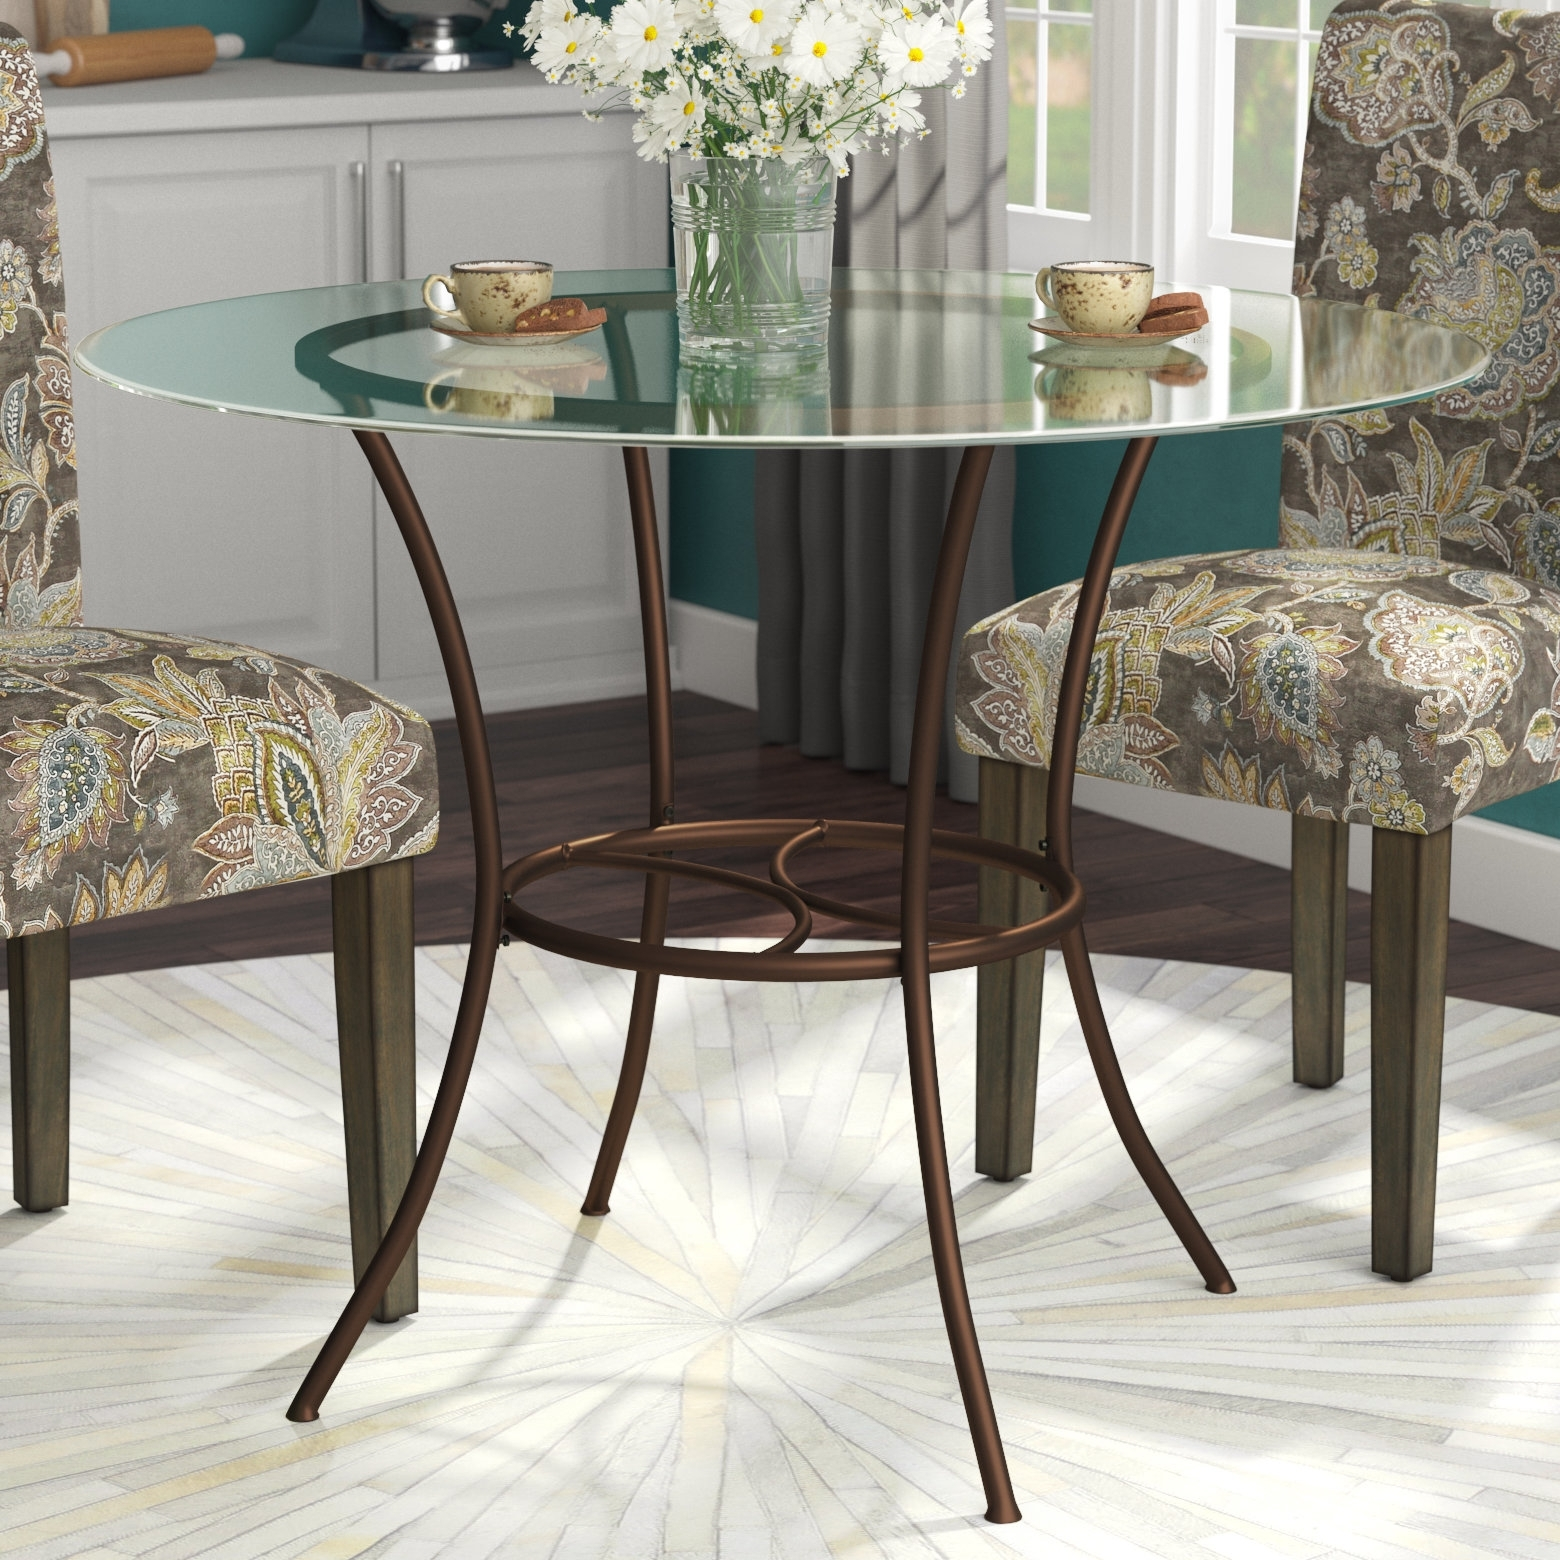 Andover Mills Jefferson Dining Table & Reviews | Wayfair Inside Most Current Jefferson Extension Round Dining Tables (Image 1 of 20)